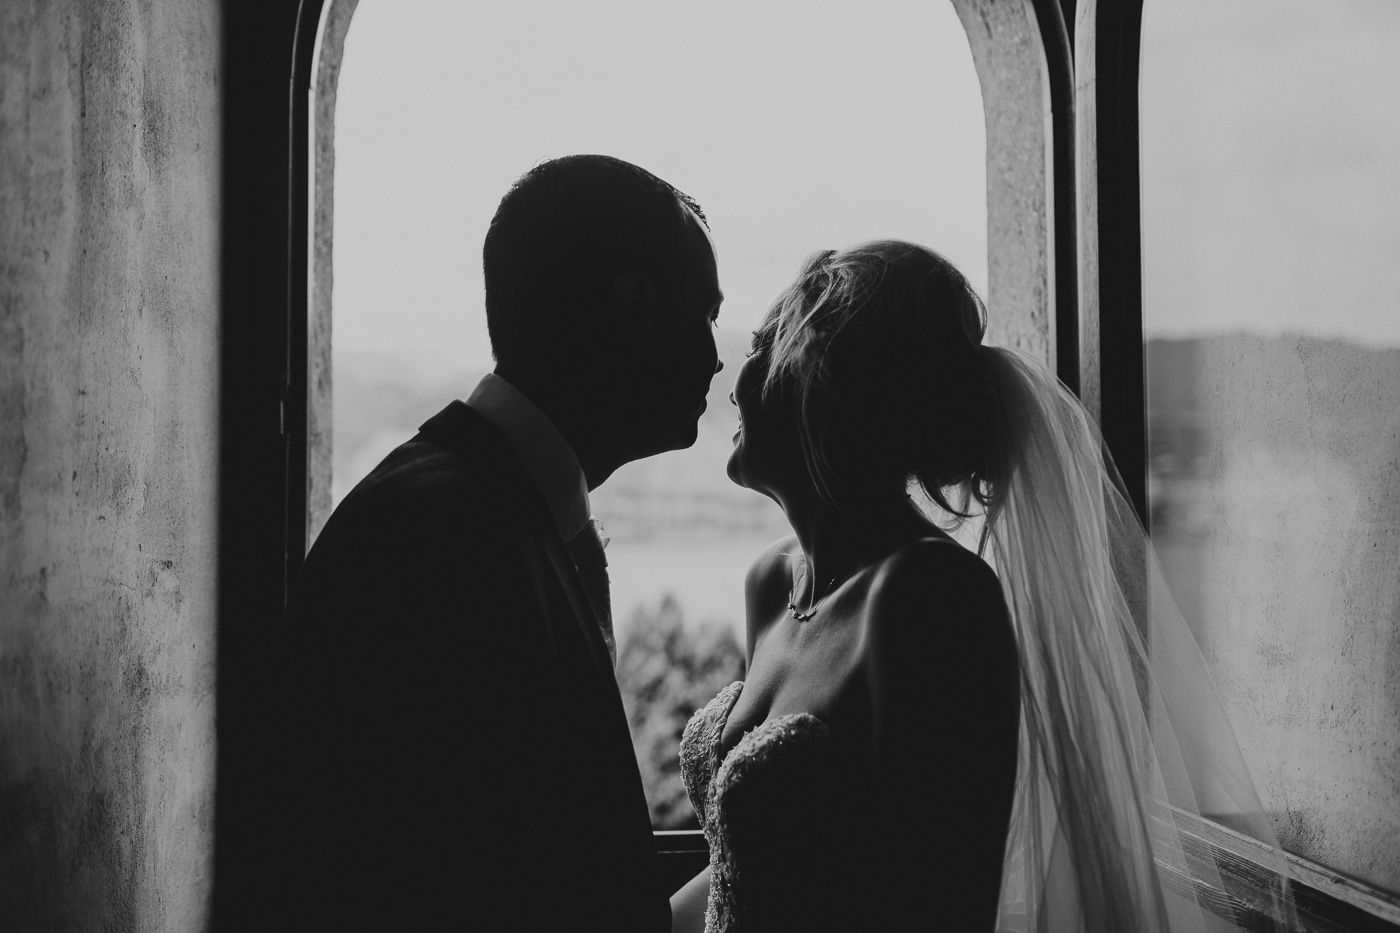 Black and white image of bride and groom standing in window laughing and overlooking lake garda